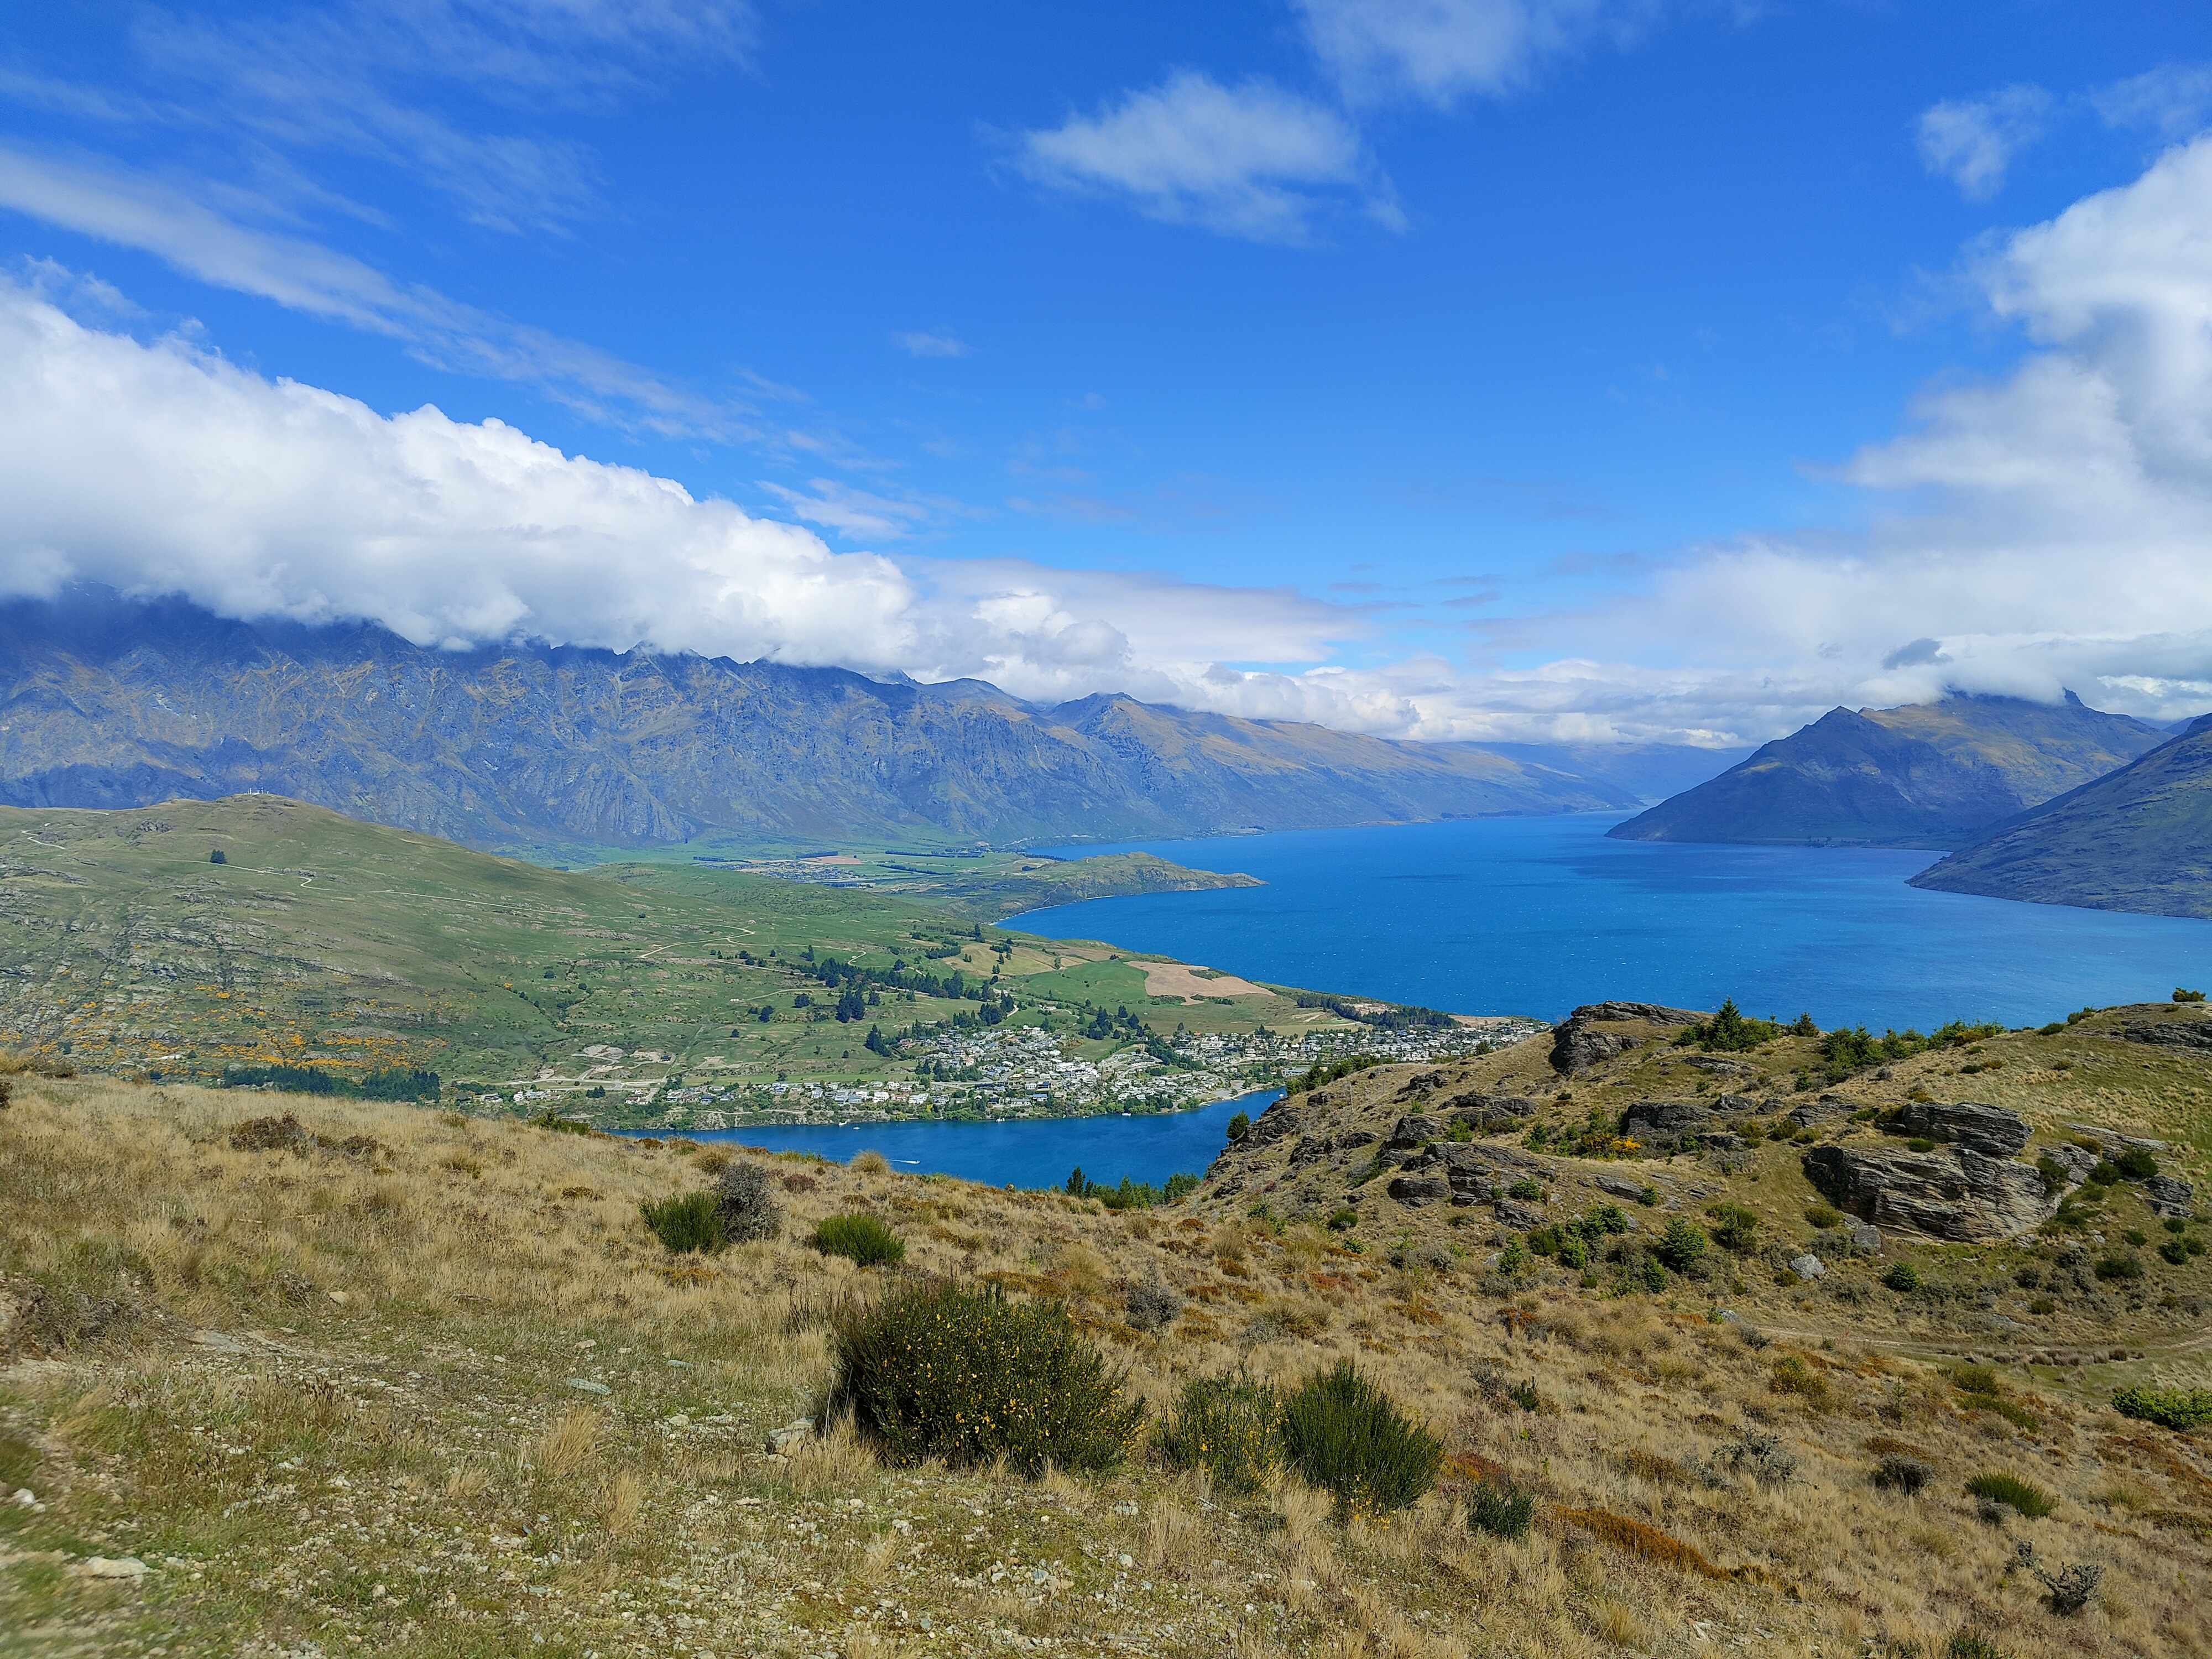 The Remarkables mountain range is clearly visible from Queenstown Hill